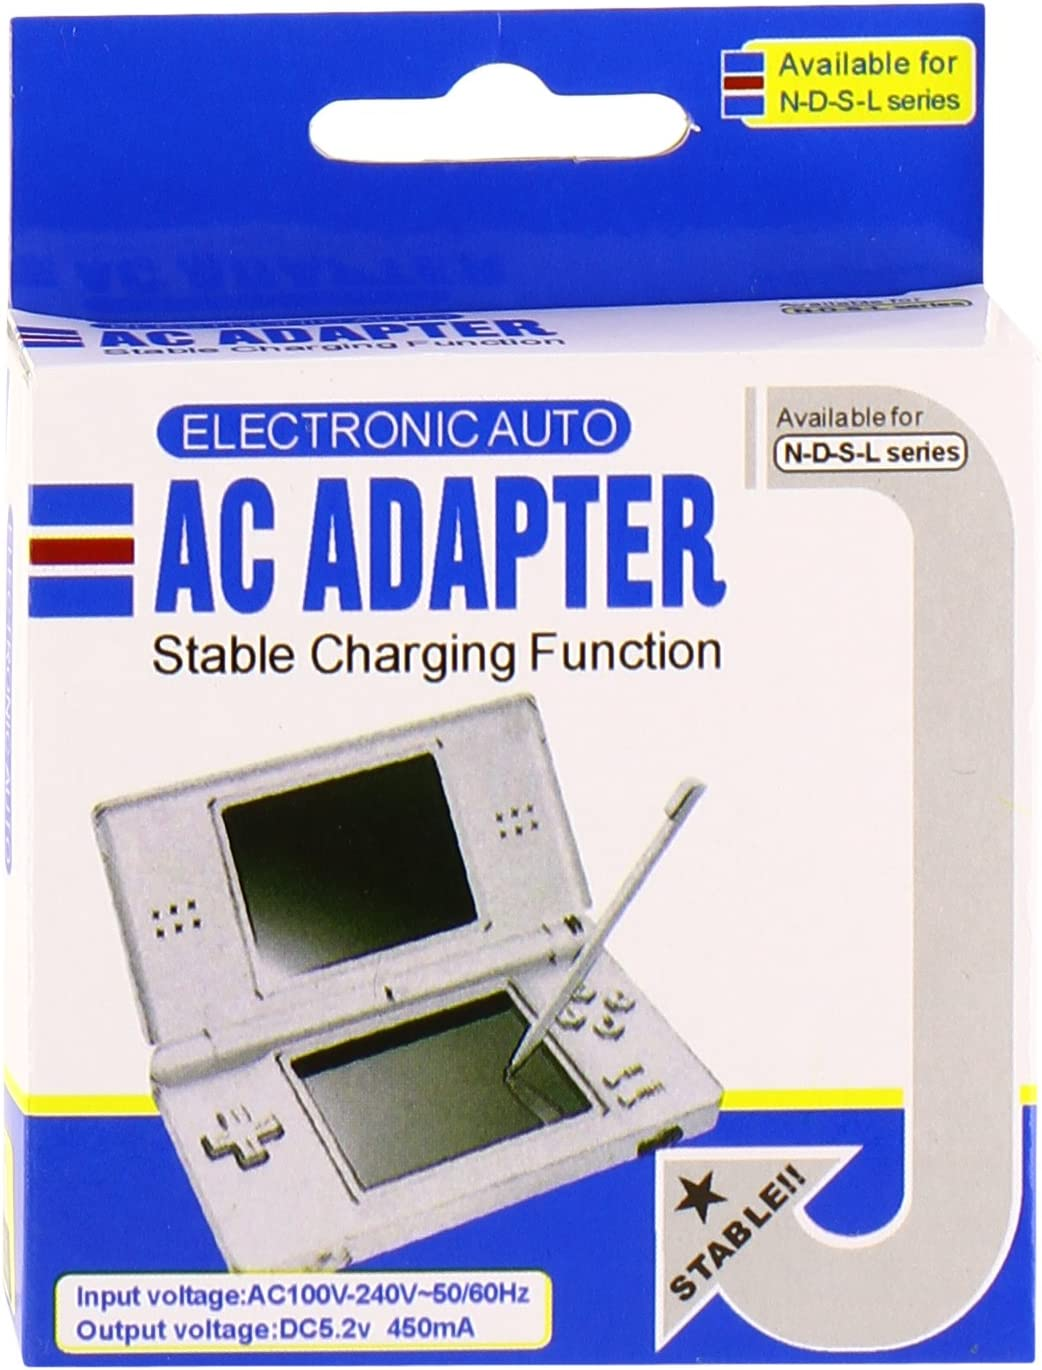 amazon com wall charger for nintendo ds lite lifetime warranty rh amazon com